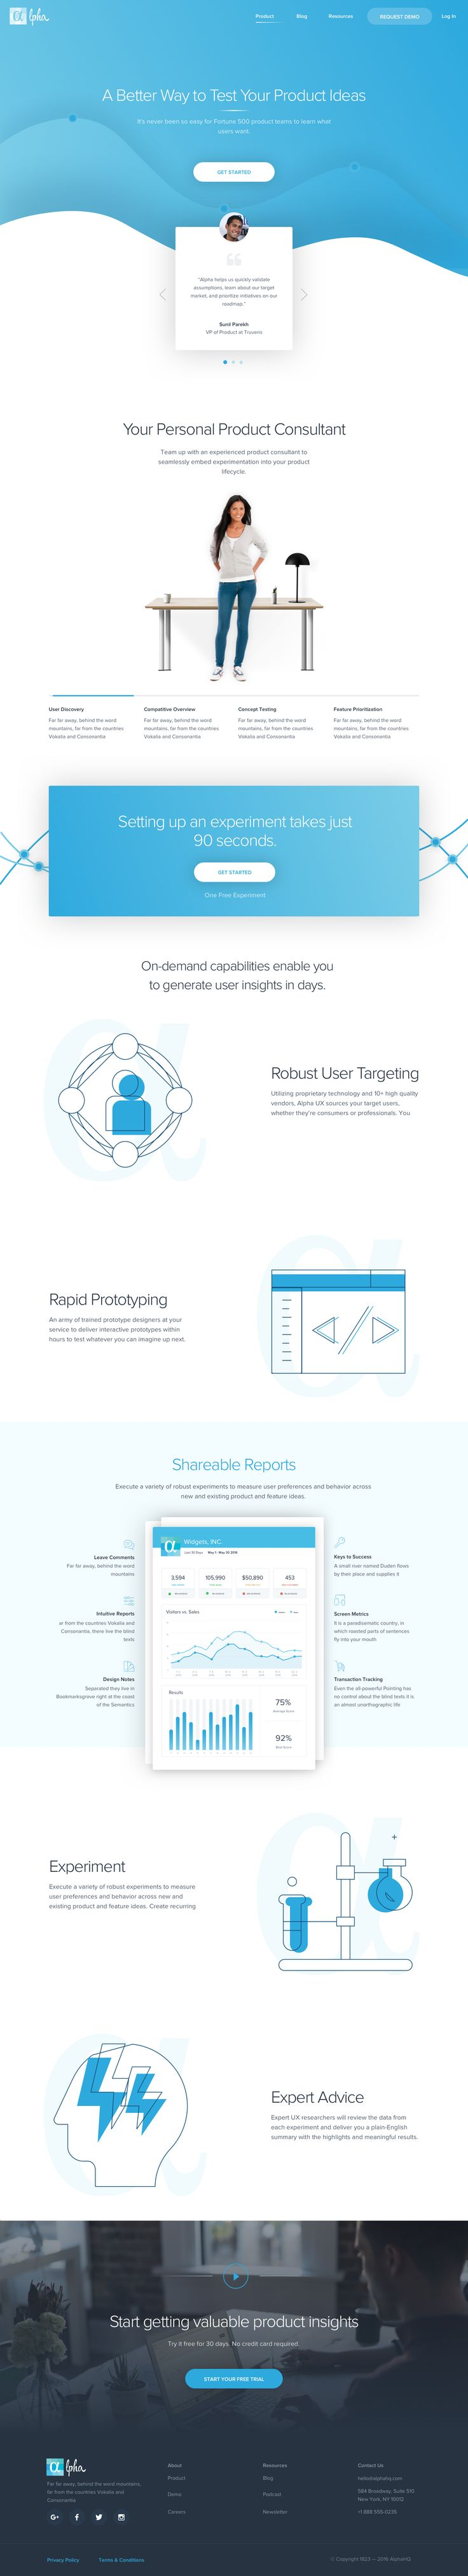 Product Featuers Landing Page